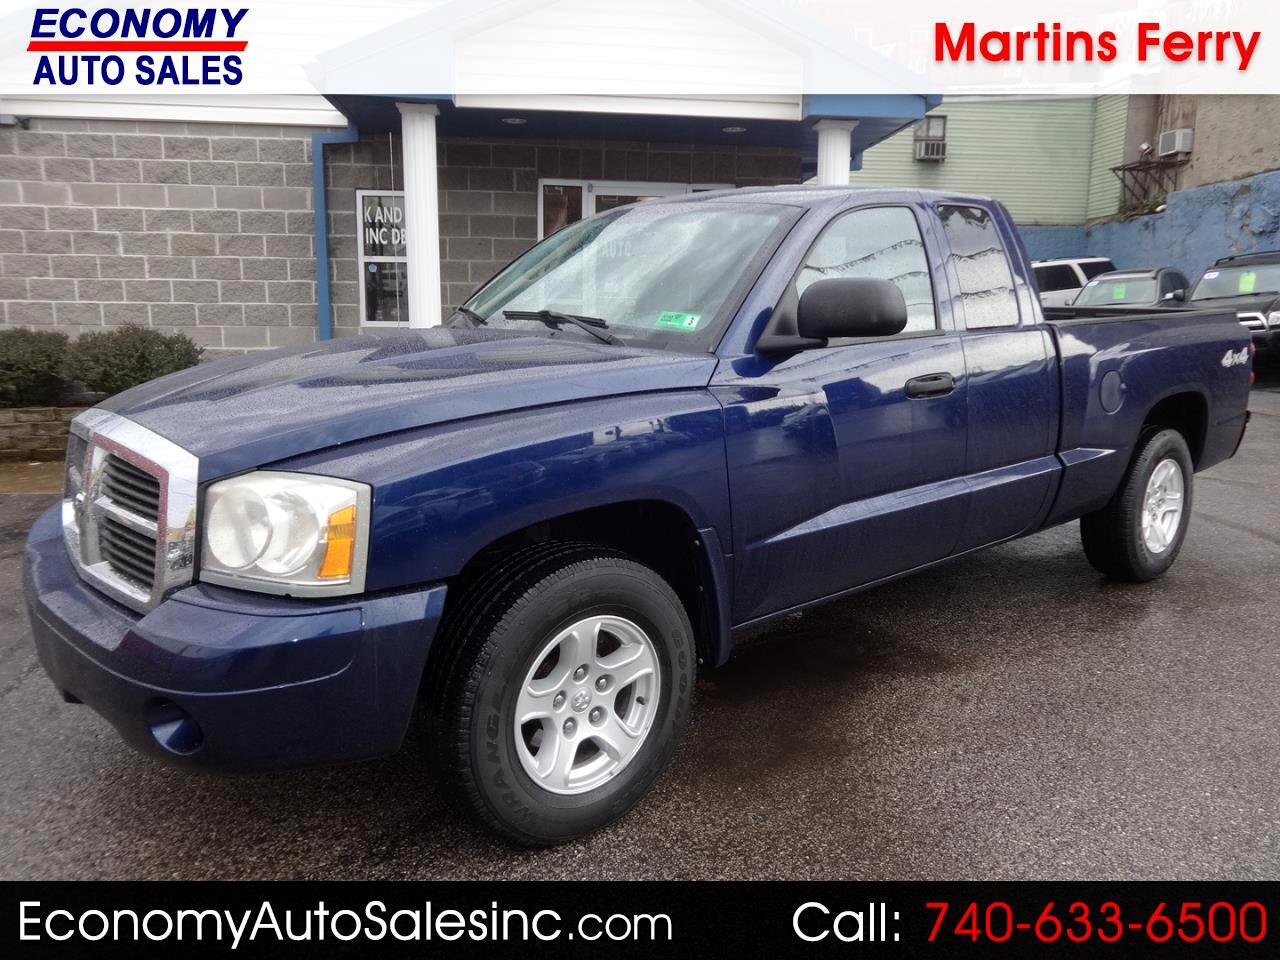 2007 Dodge Dakota SLT Club Cab 4WD